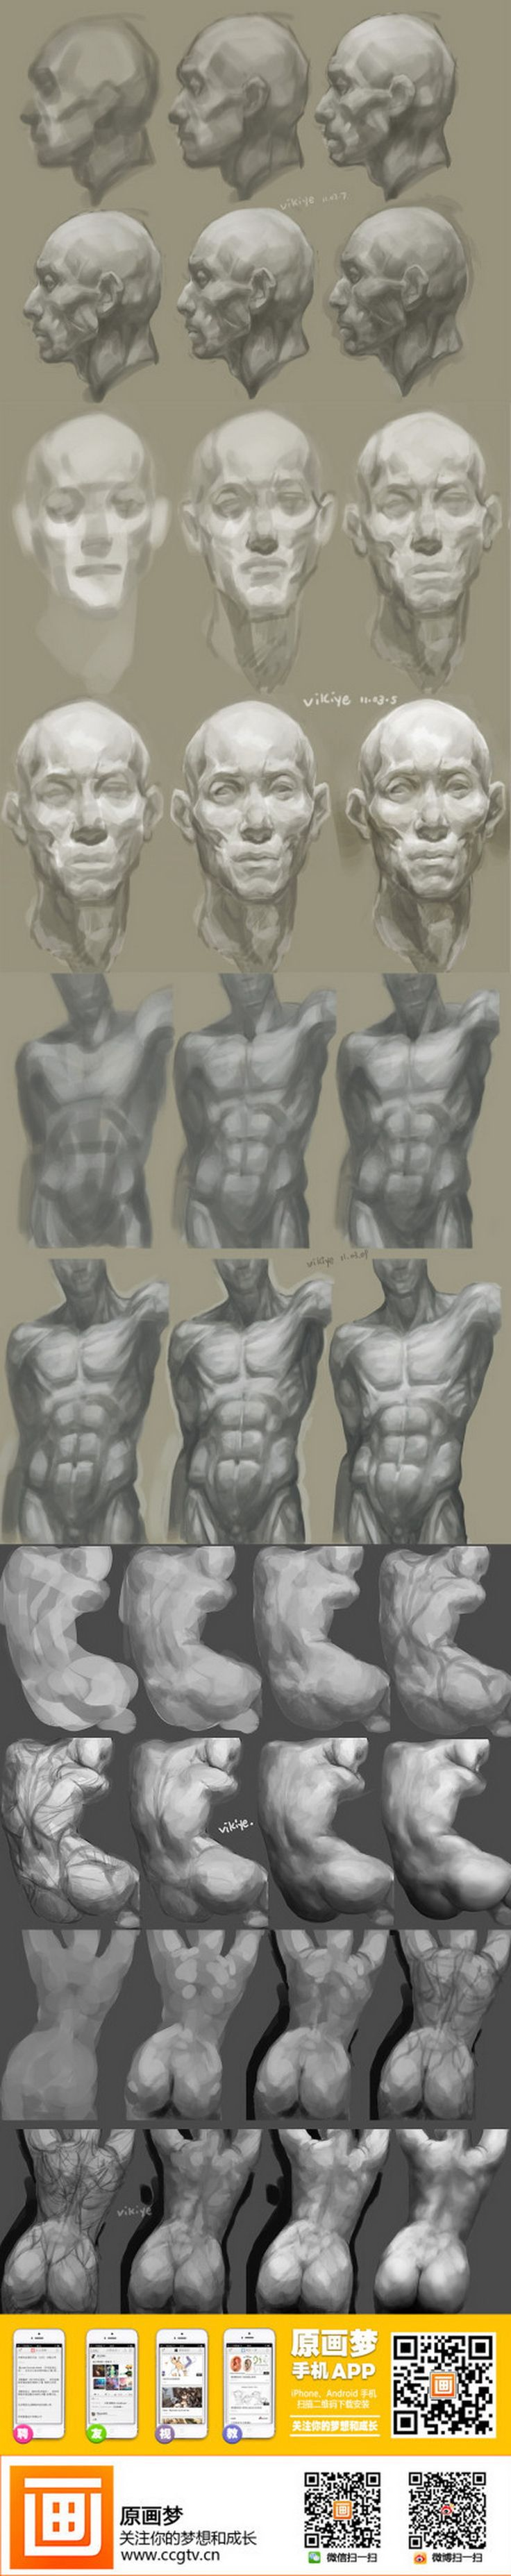 [Human] original painting black and white structure dream - long chart Tutorial - micro elements Element3ds - Powered by Discuz! via http://cgpin.com